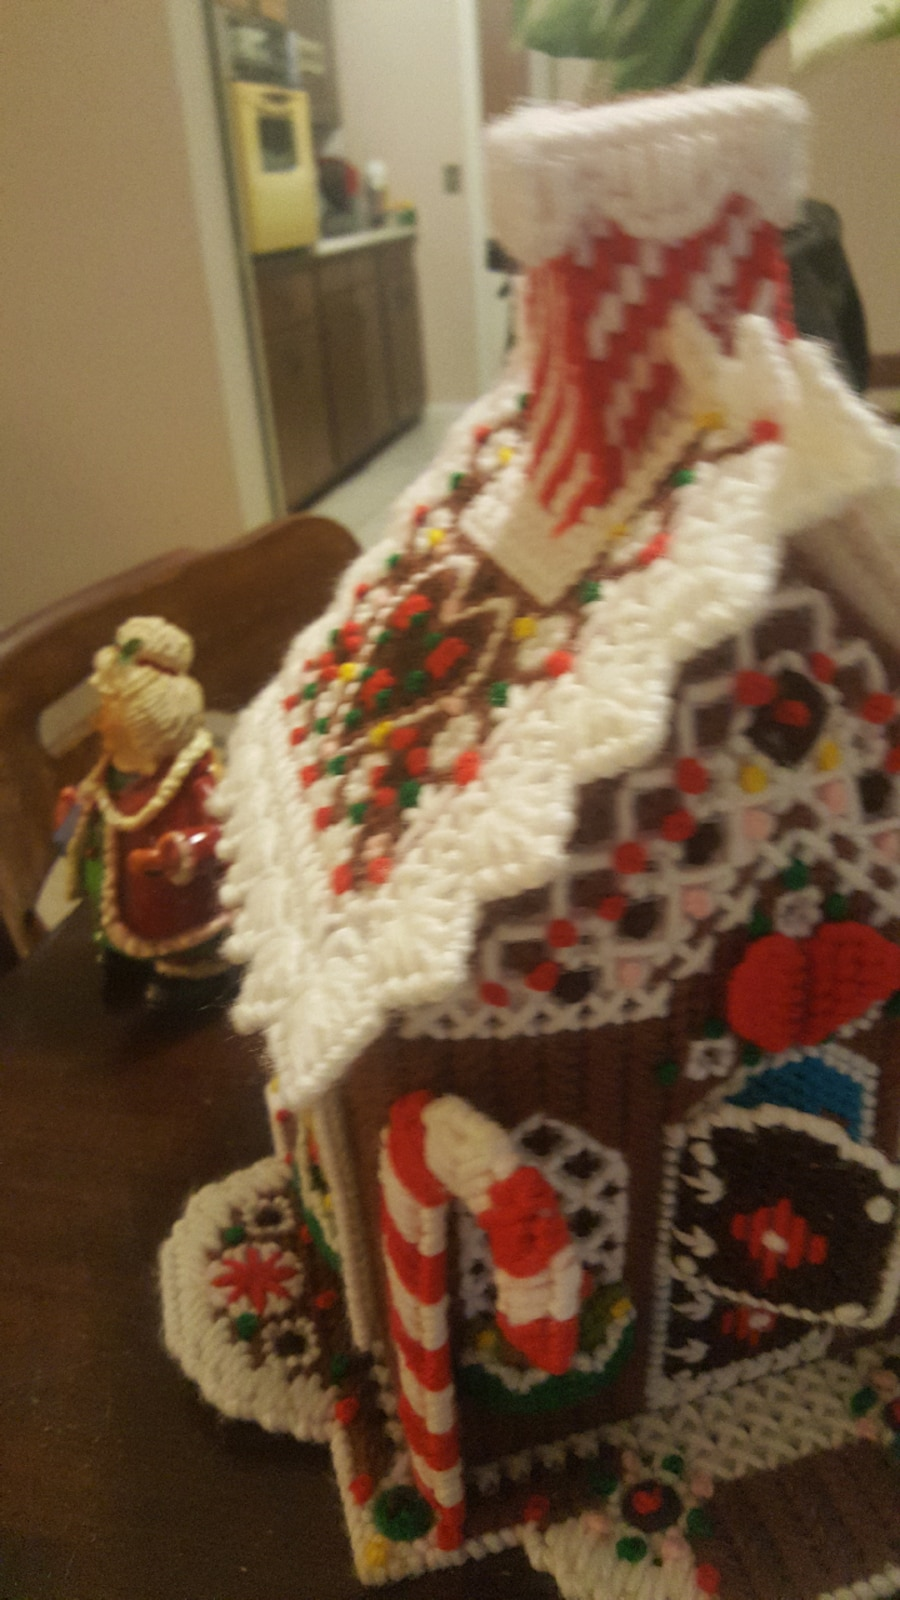 Needlepoint Fibgwrbreas House and Mrs. Santa - United States